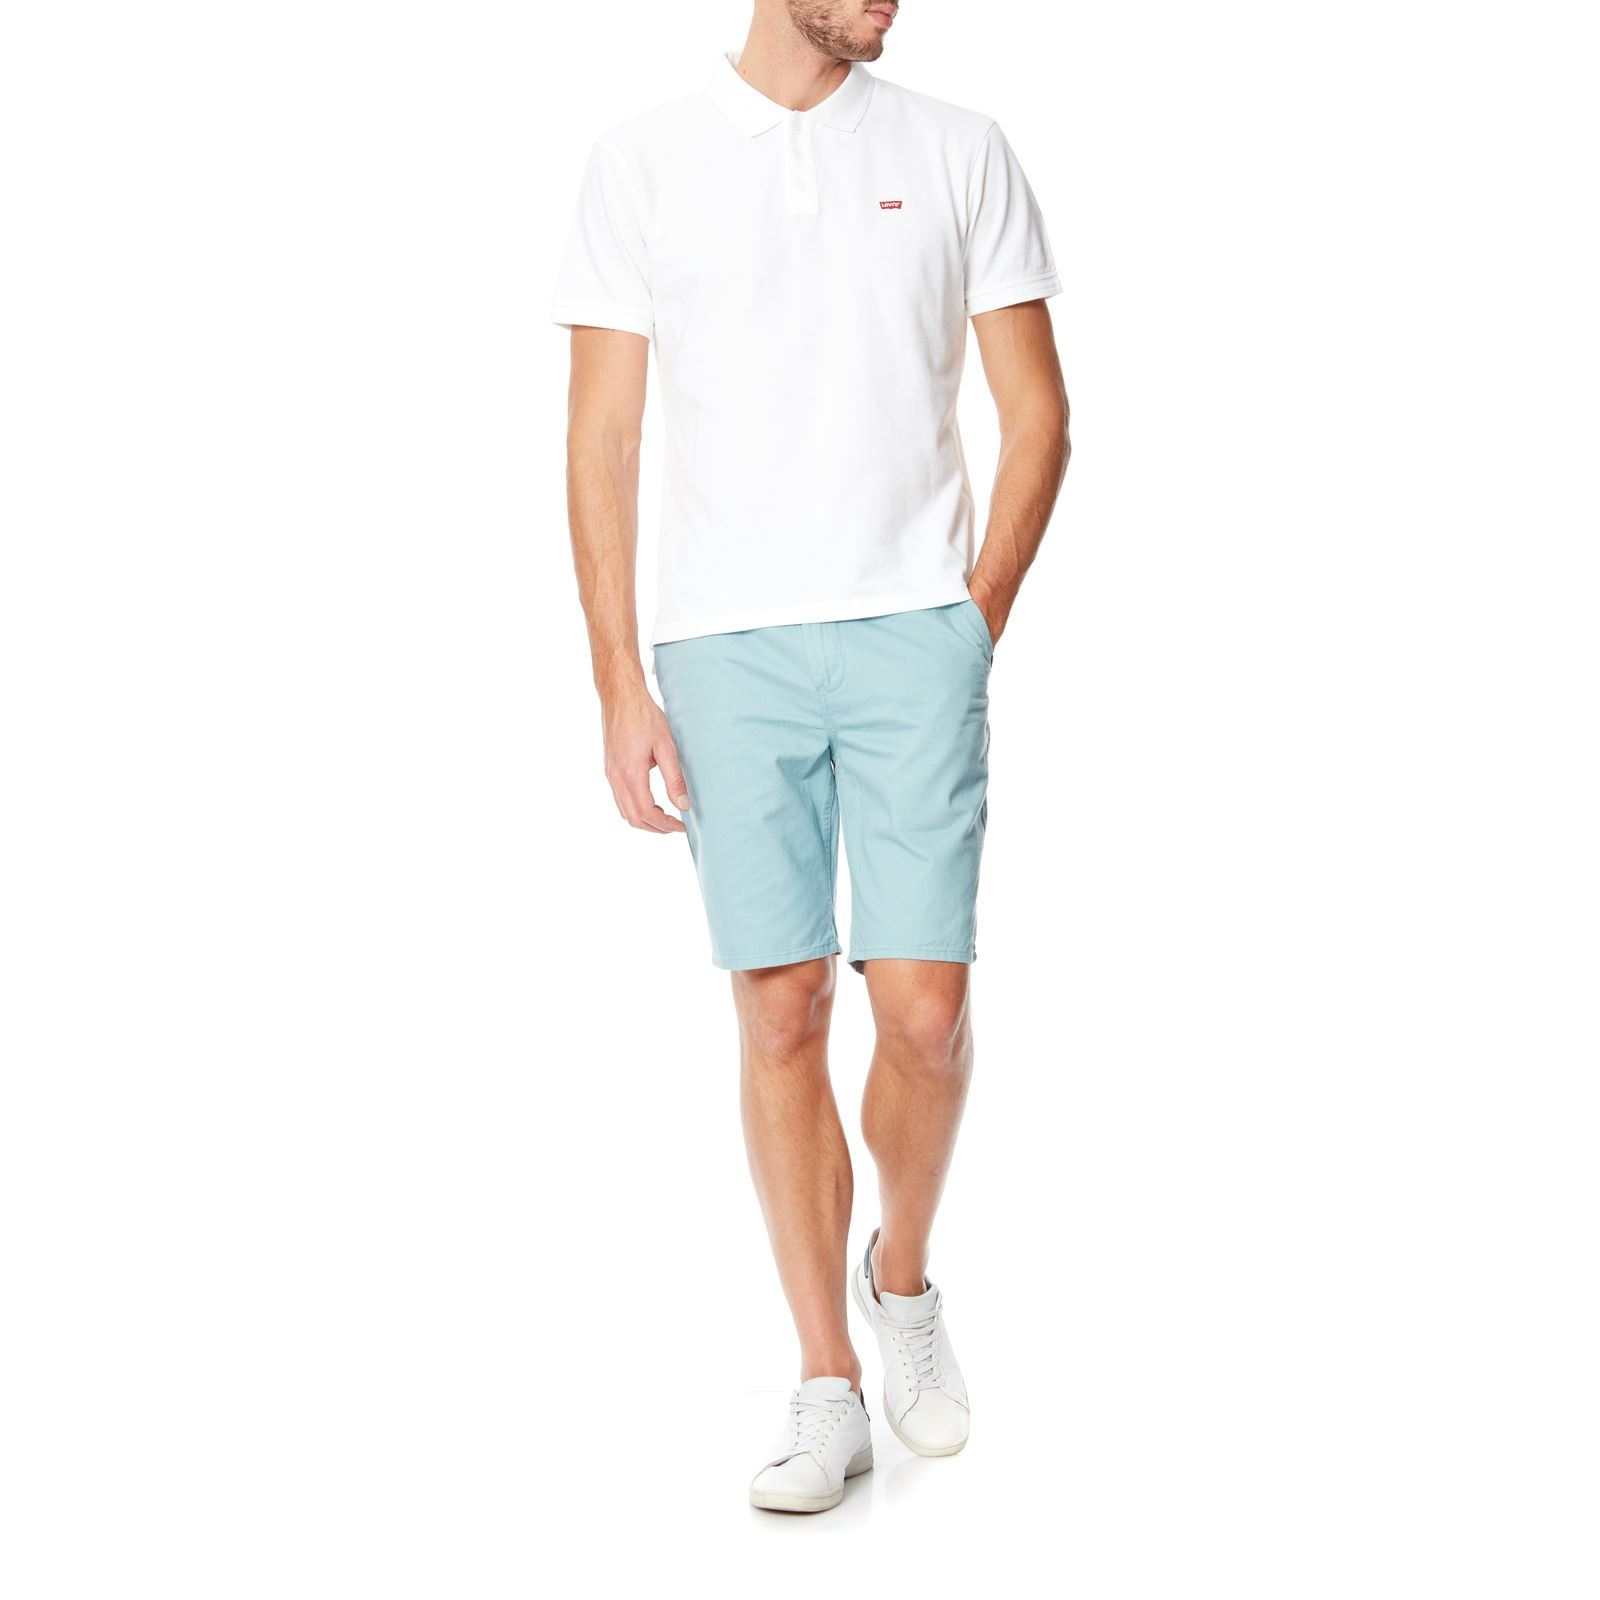 Polos Levi's blancs Casual homme